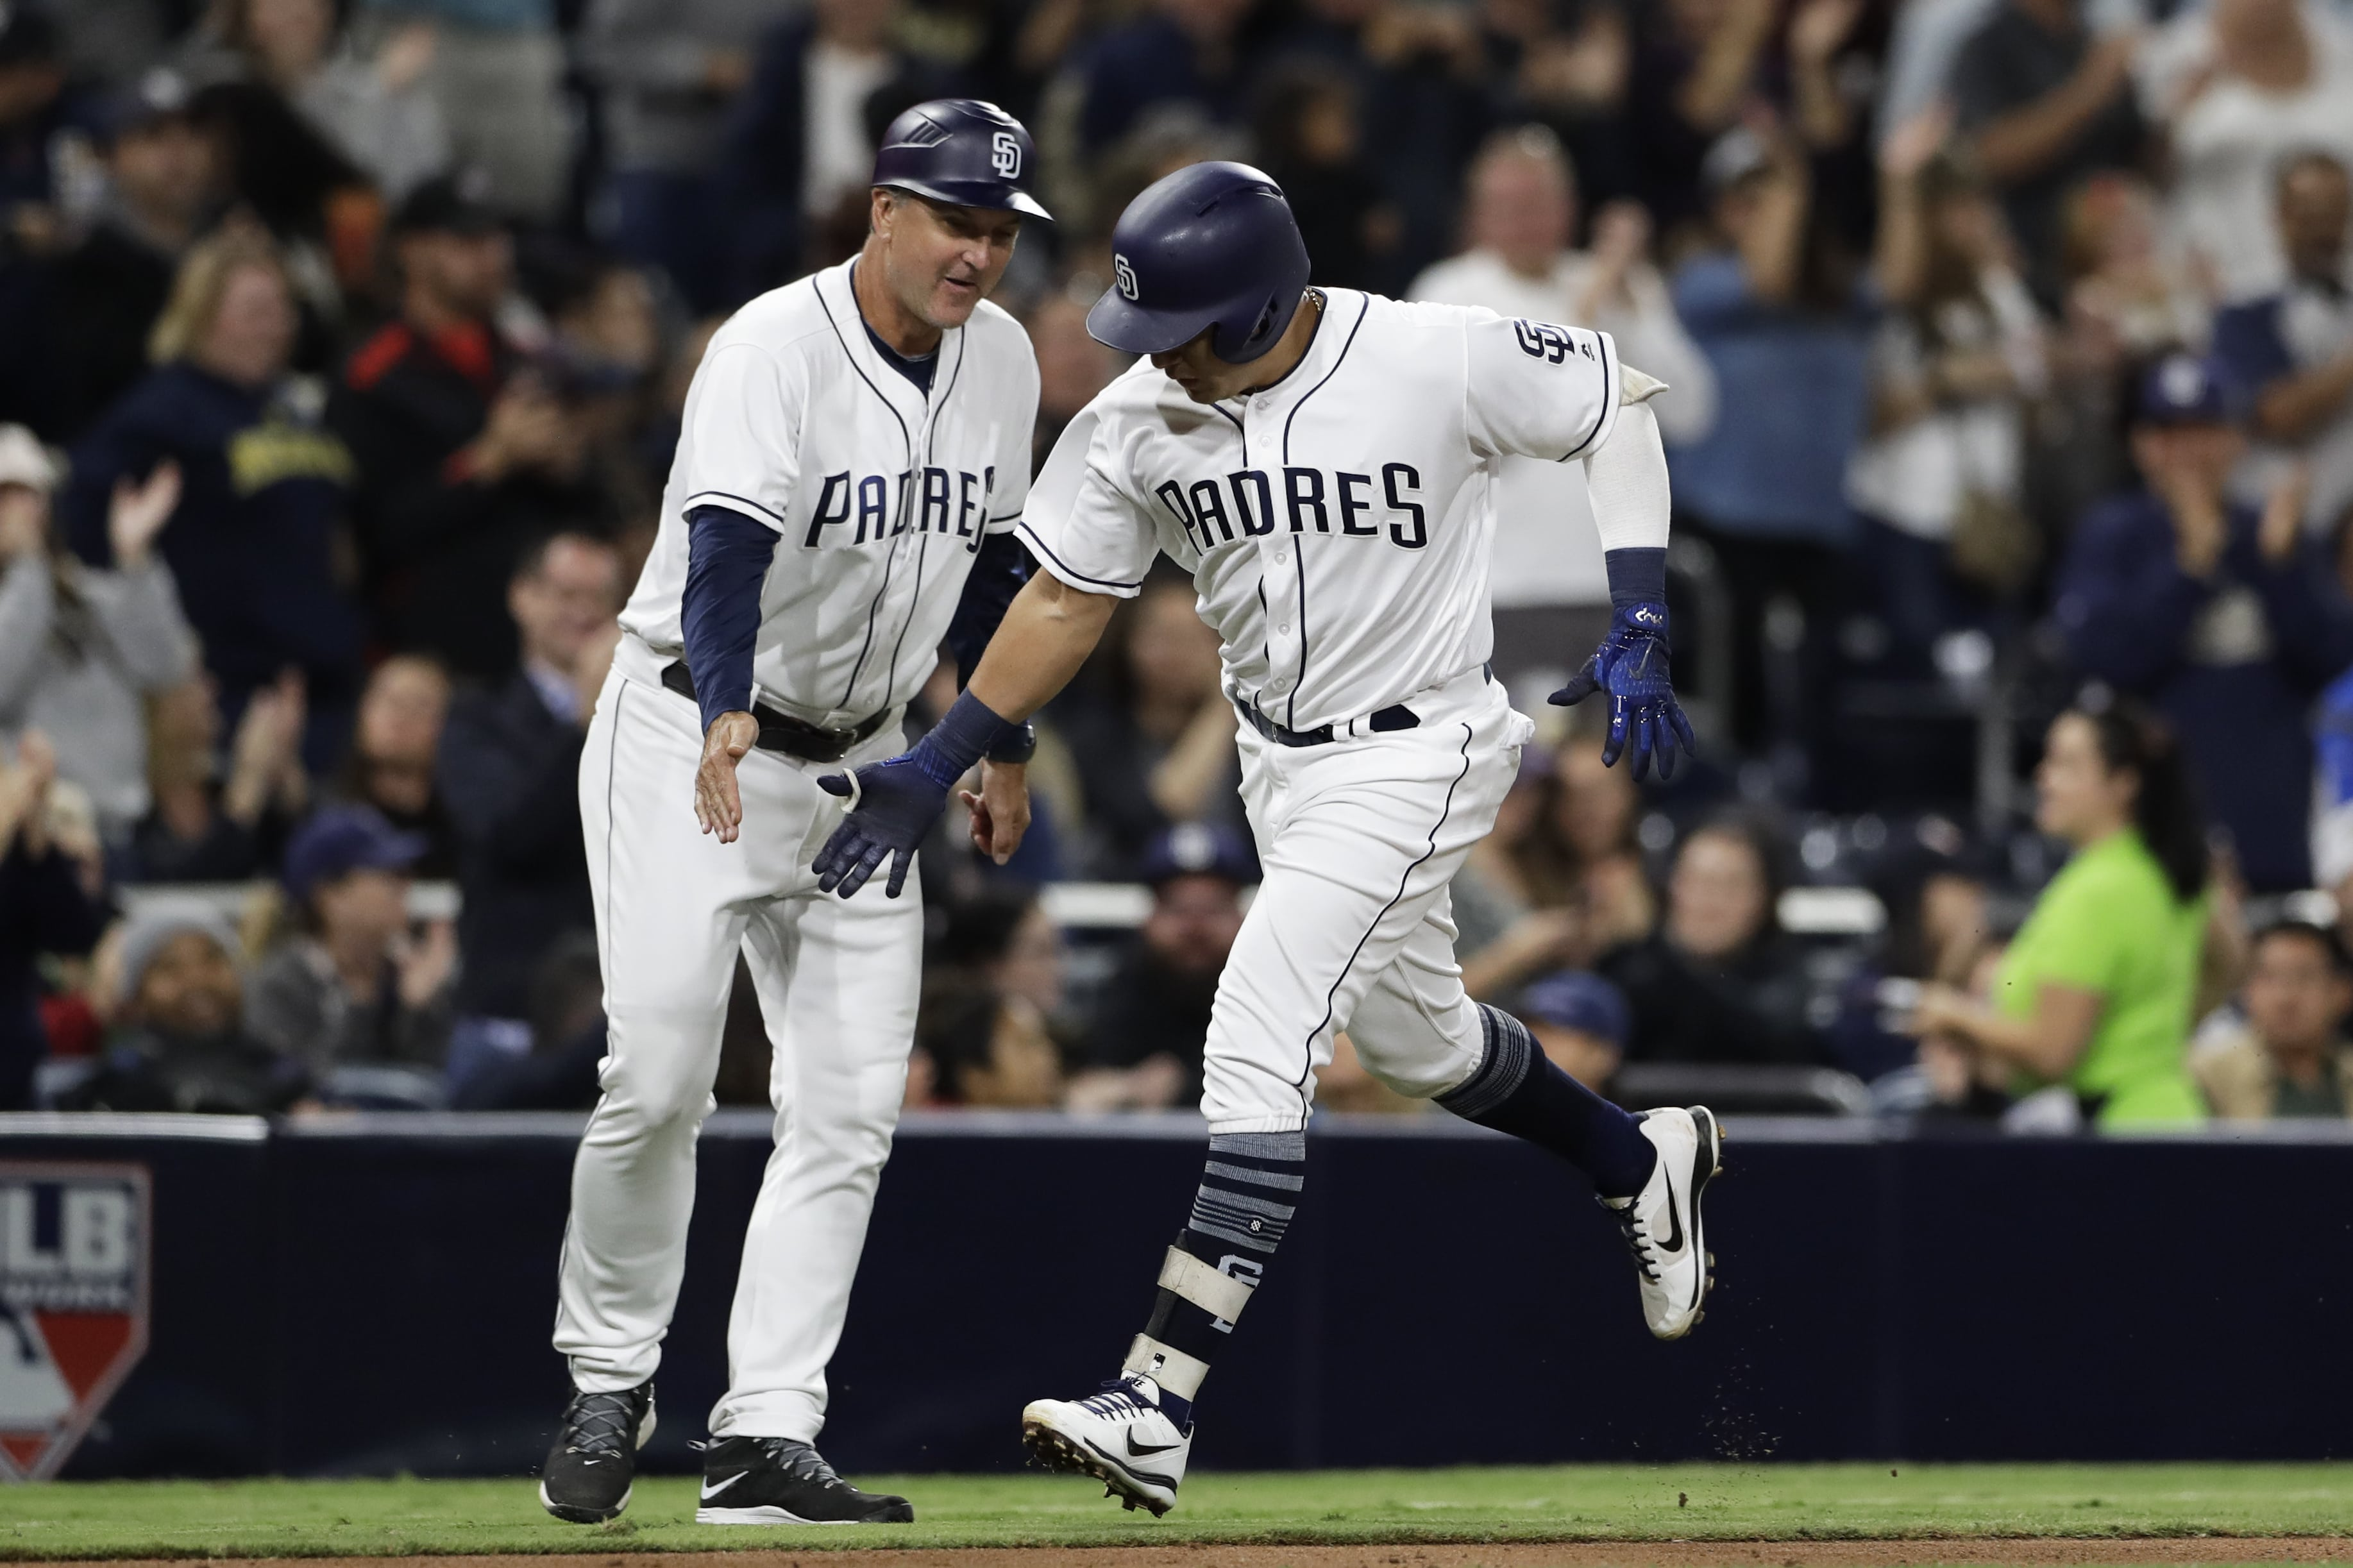 Is Villanueva the Future 3B for Padres? | East Village Times